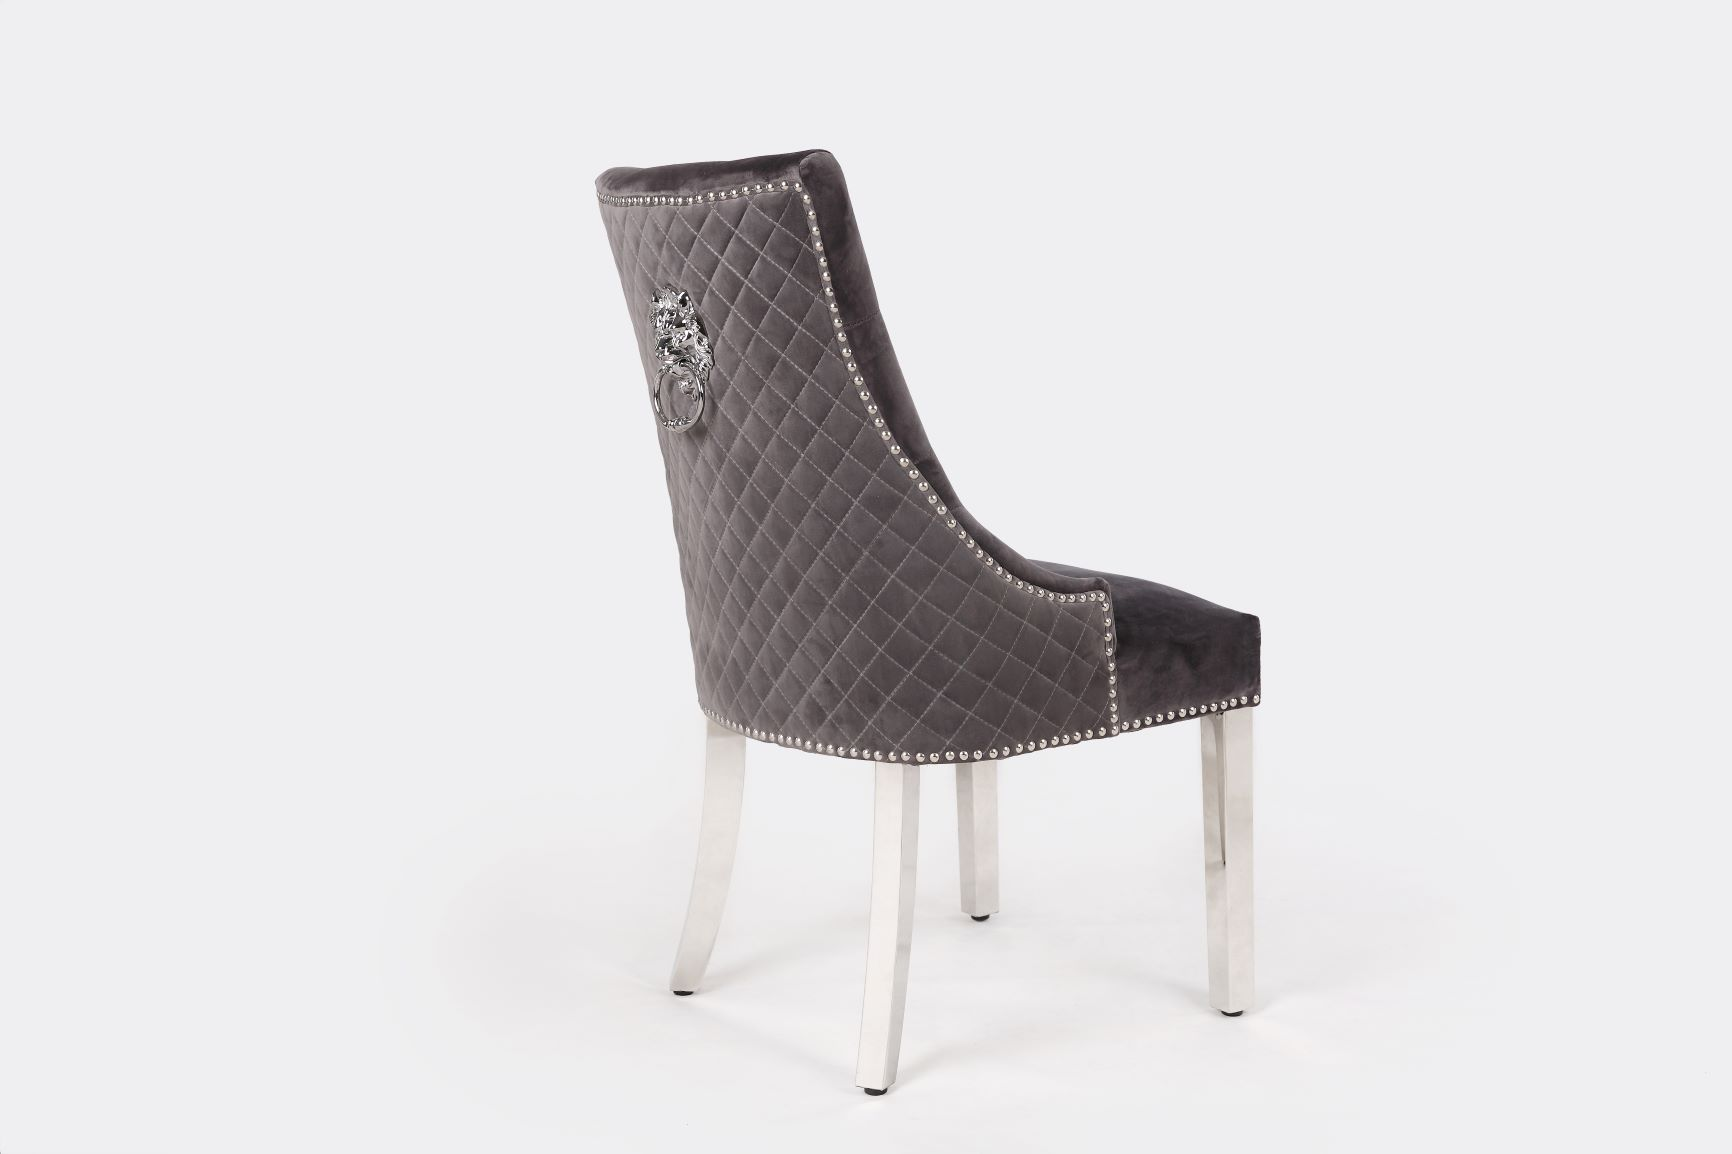 MAJESTIC DARK GREY VELVET DINING CHAIR